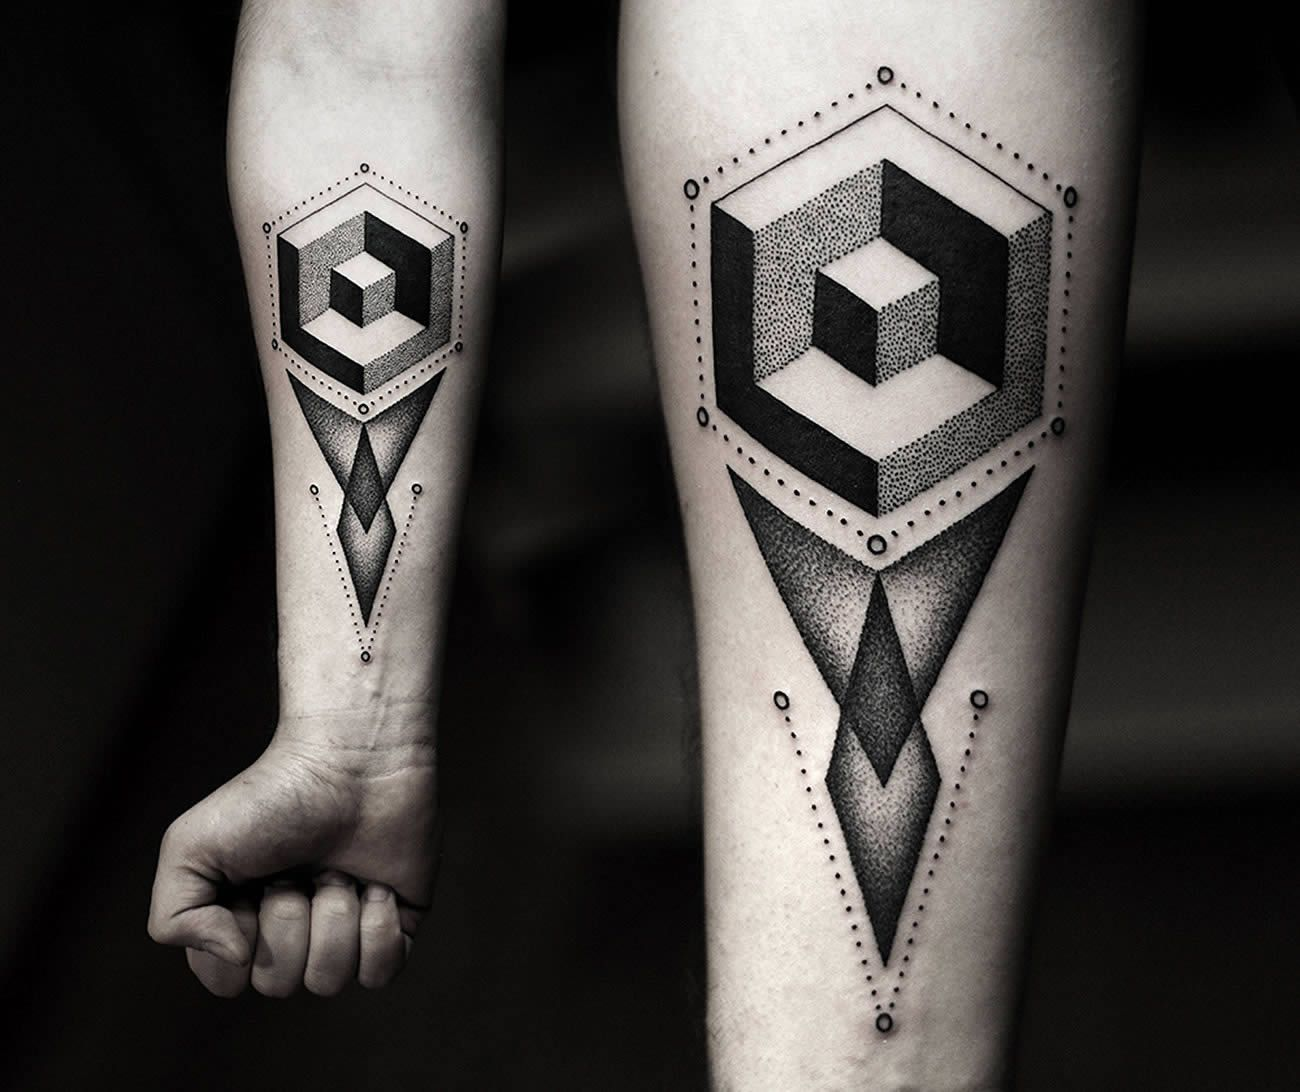 3D Geometric Shapes Tattoo